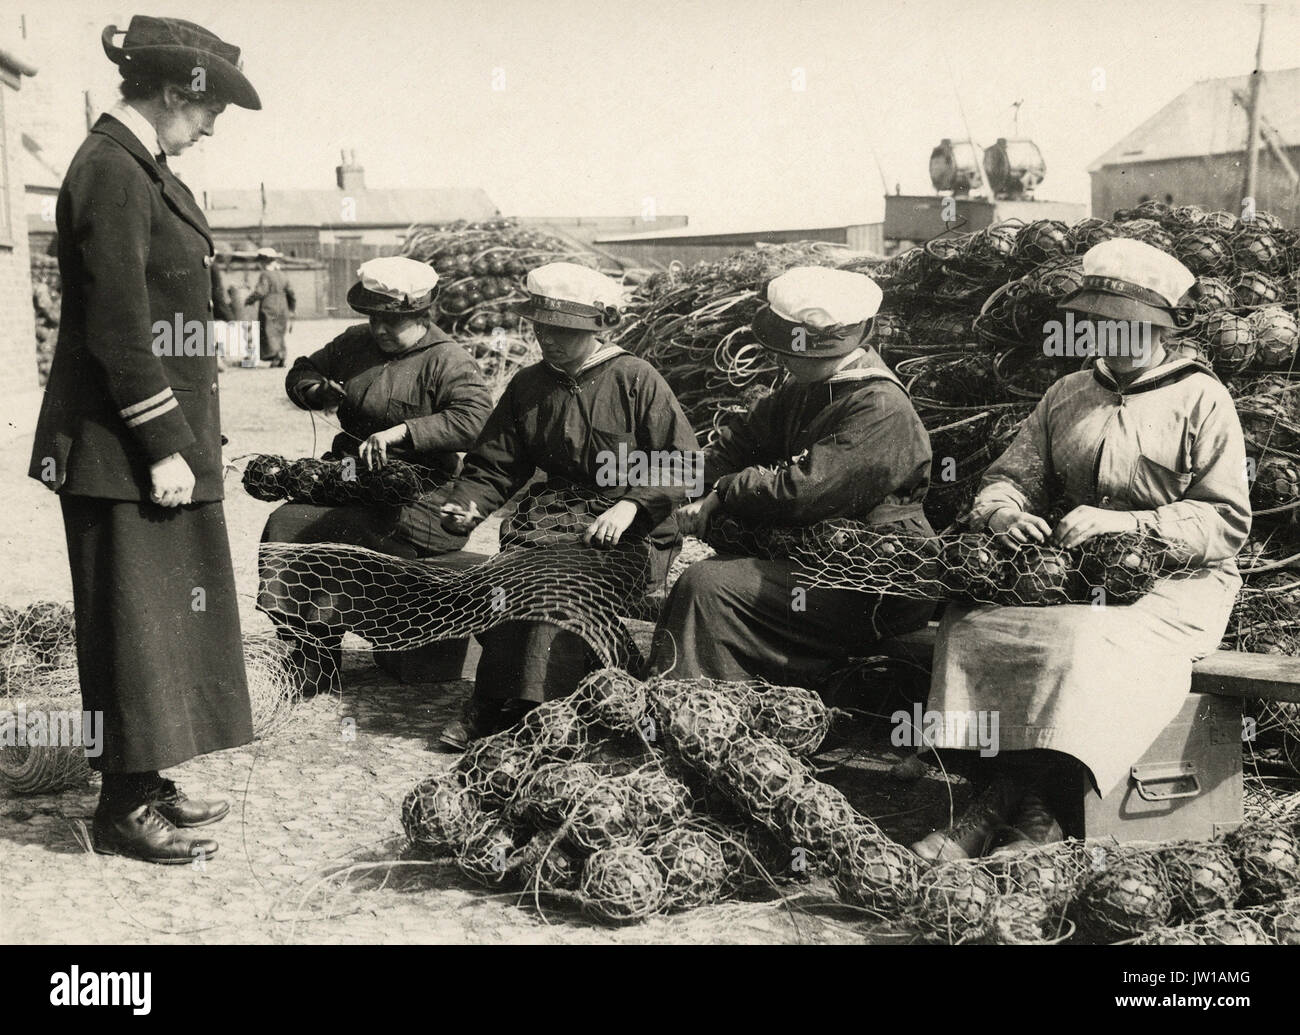 Mine net workers wiring the floats together - Alternative Title: Women's Work - Stock Image